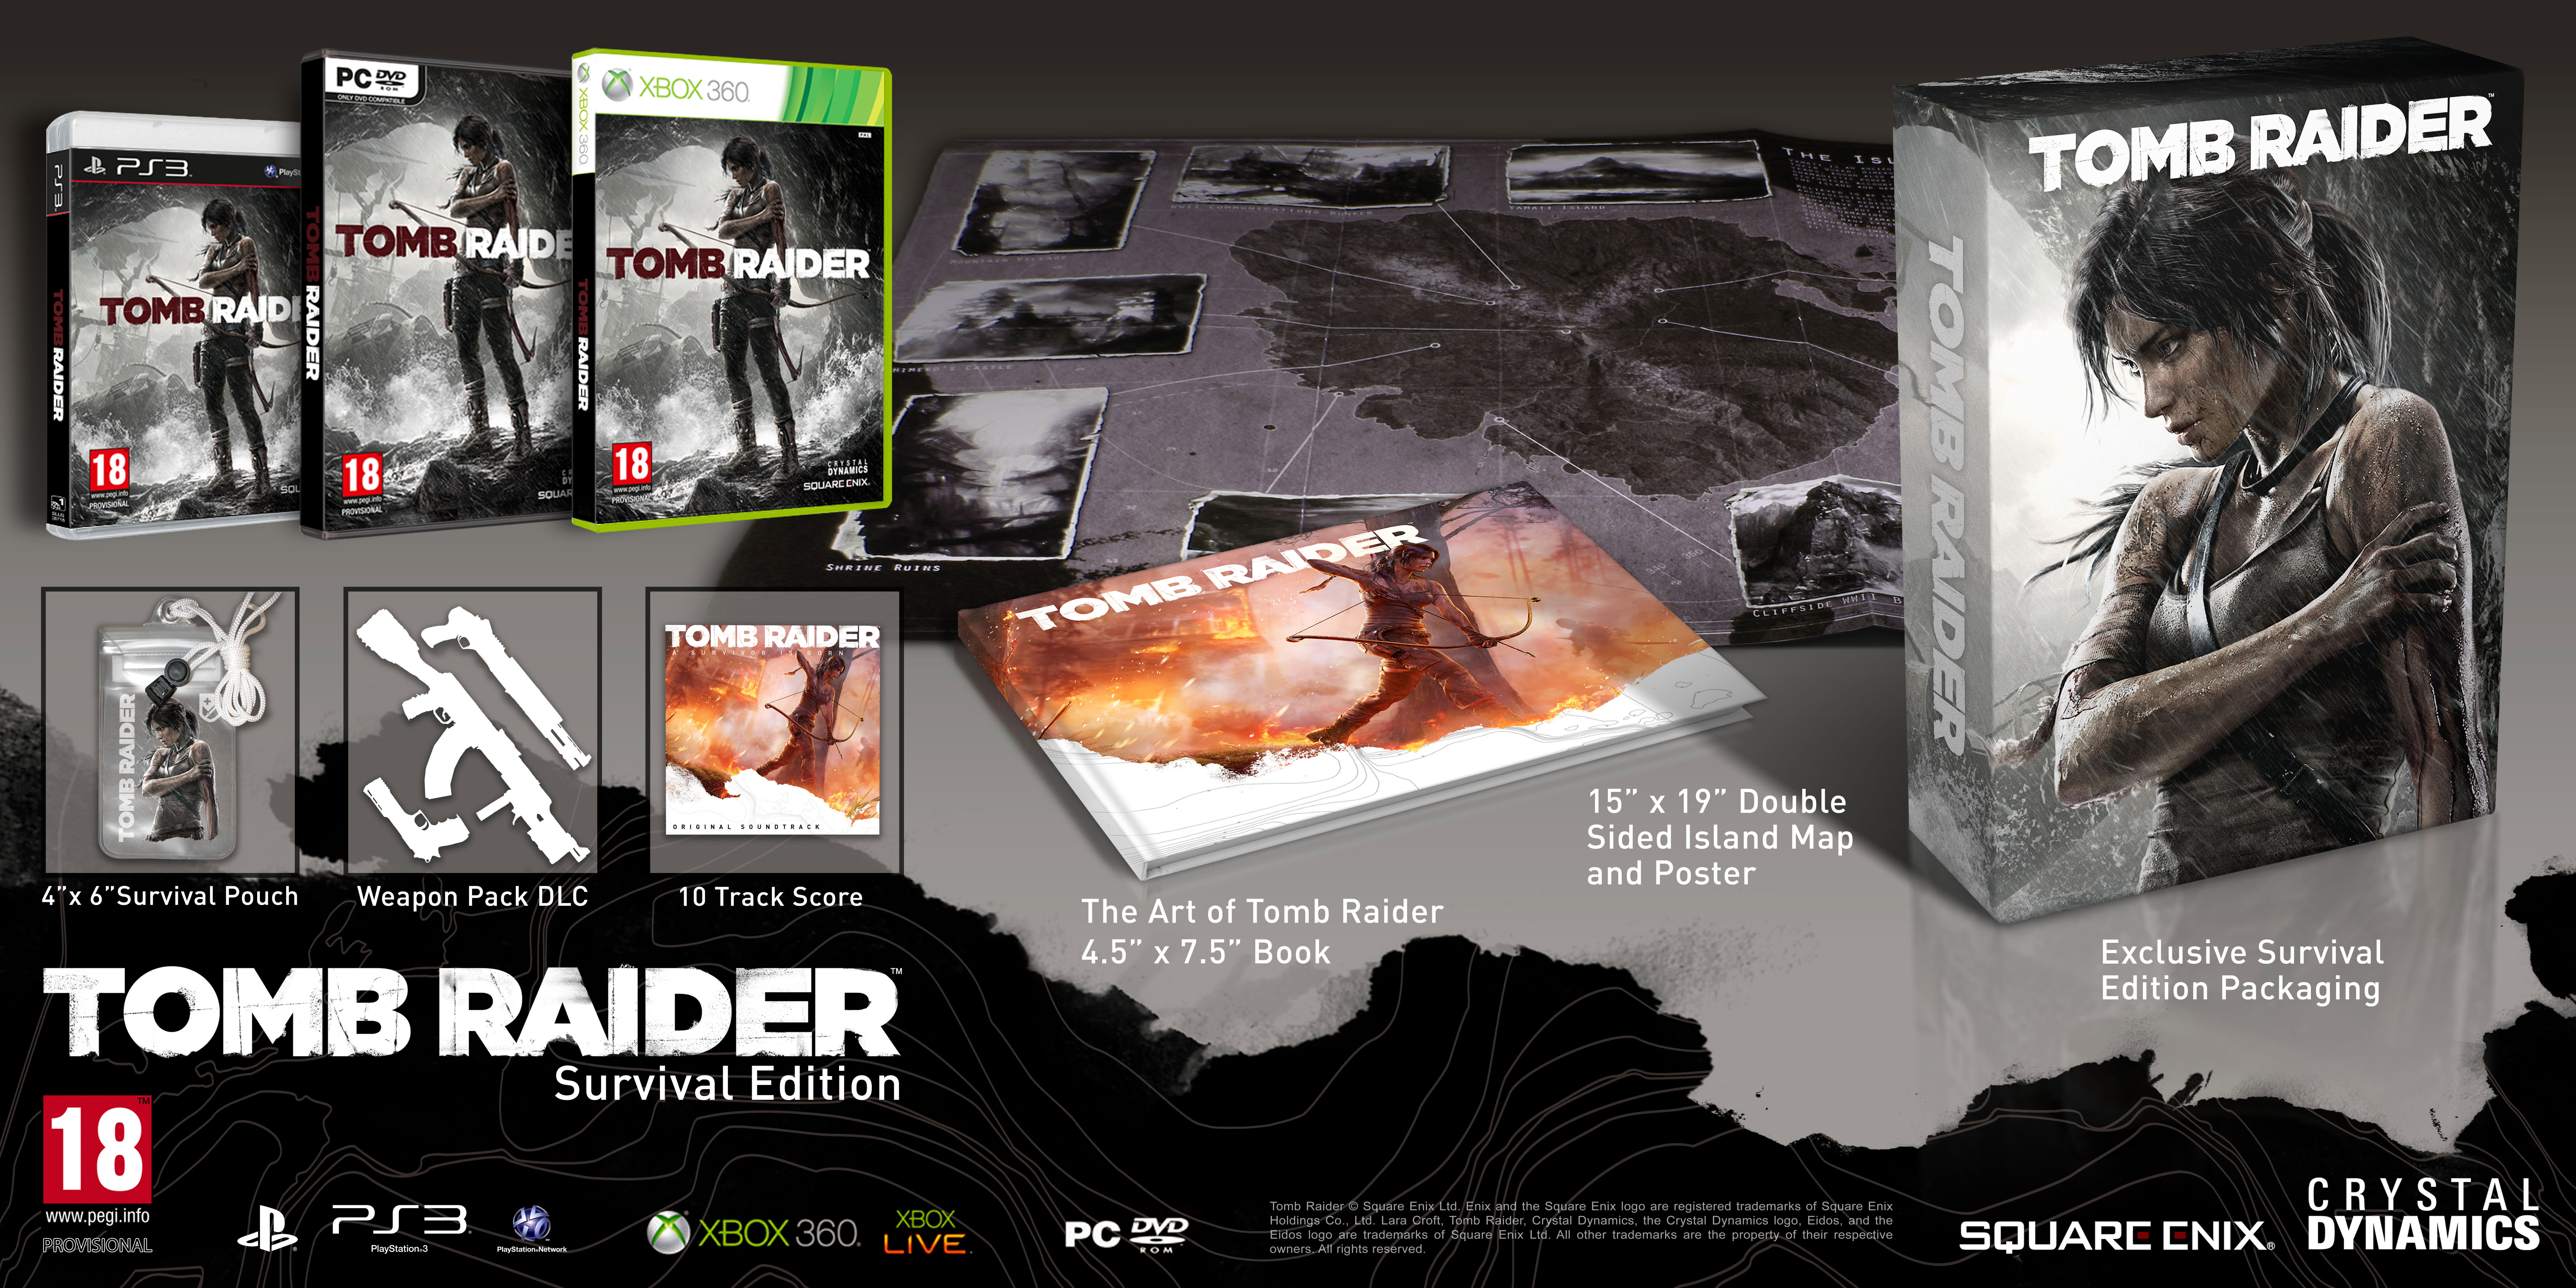 Tomb Raider Survival Edition for Xbox 360 at GAME